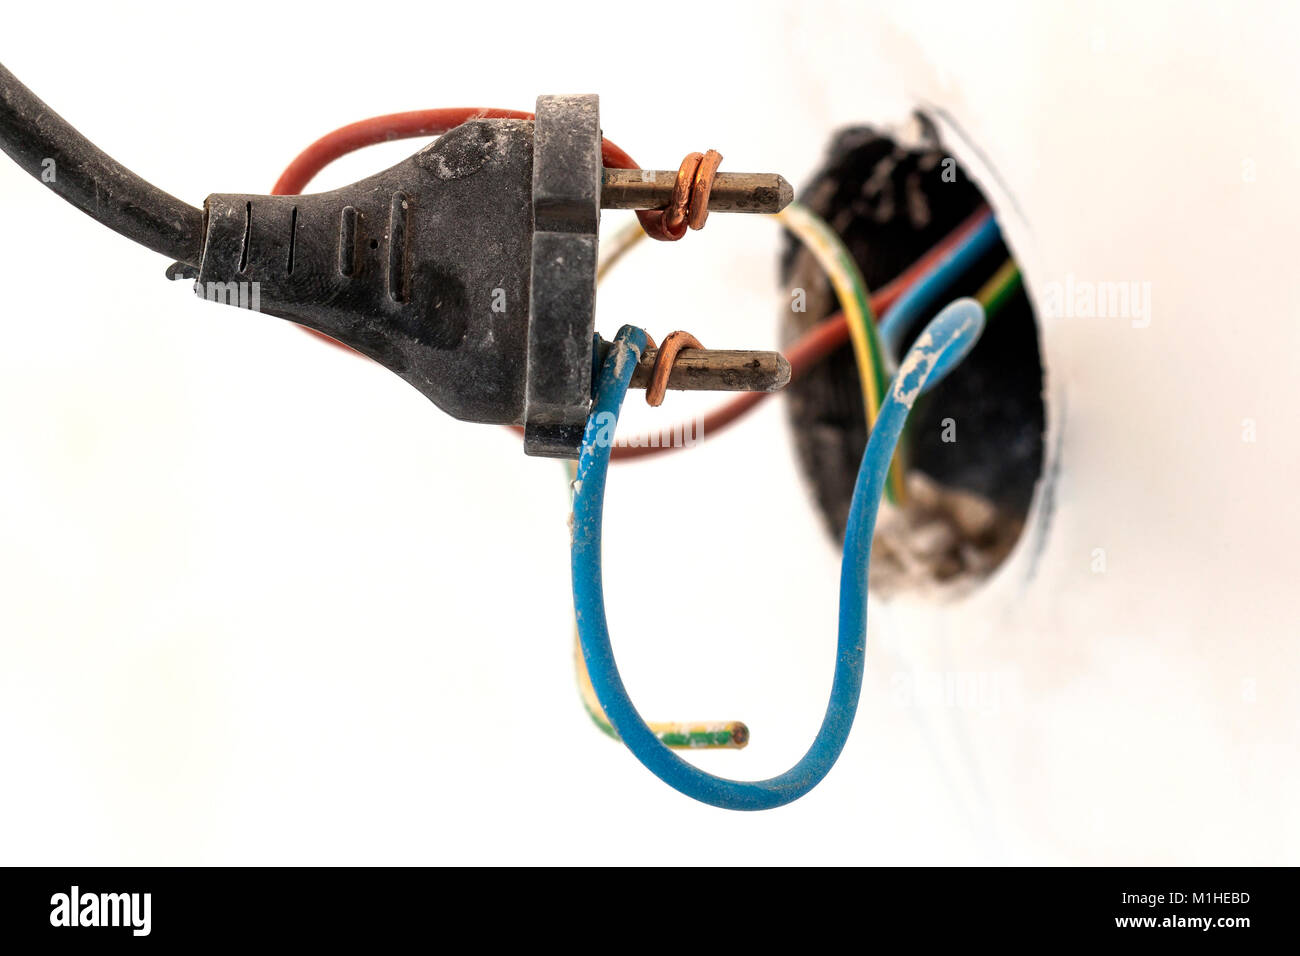 hight resolution of badly wired plug showing bad and wrong and dangerous connection stock image